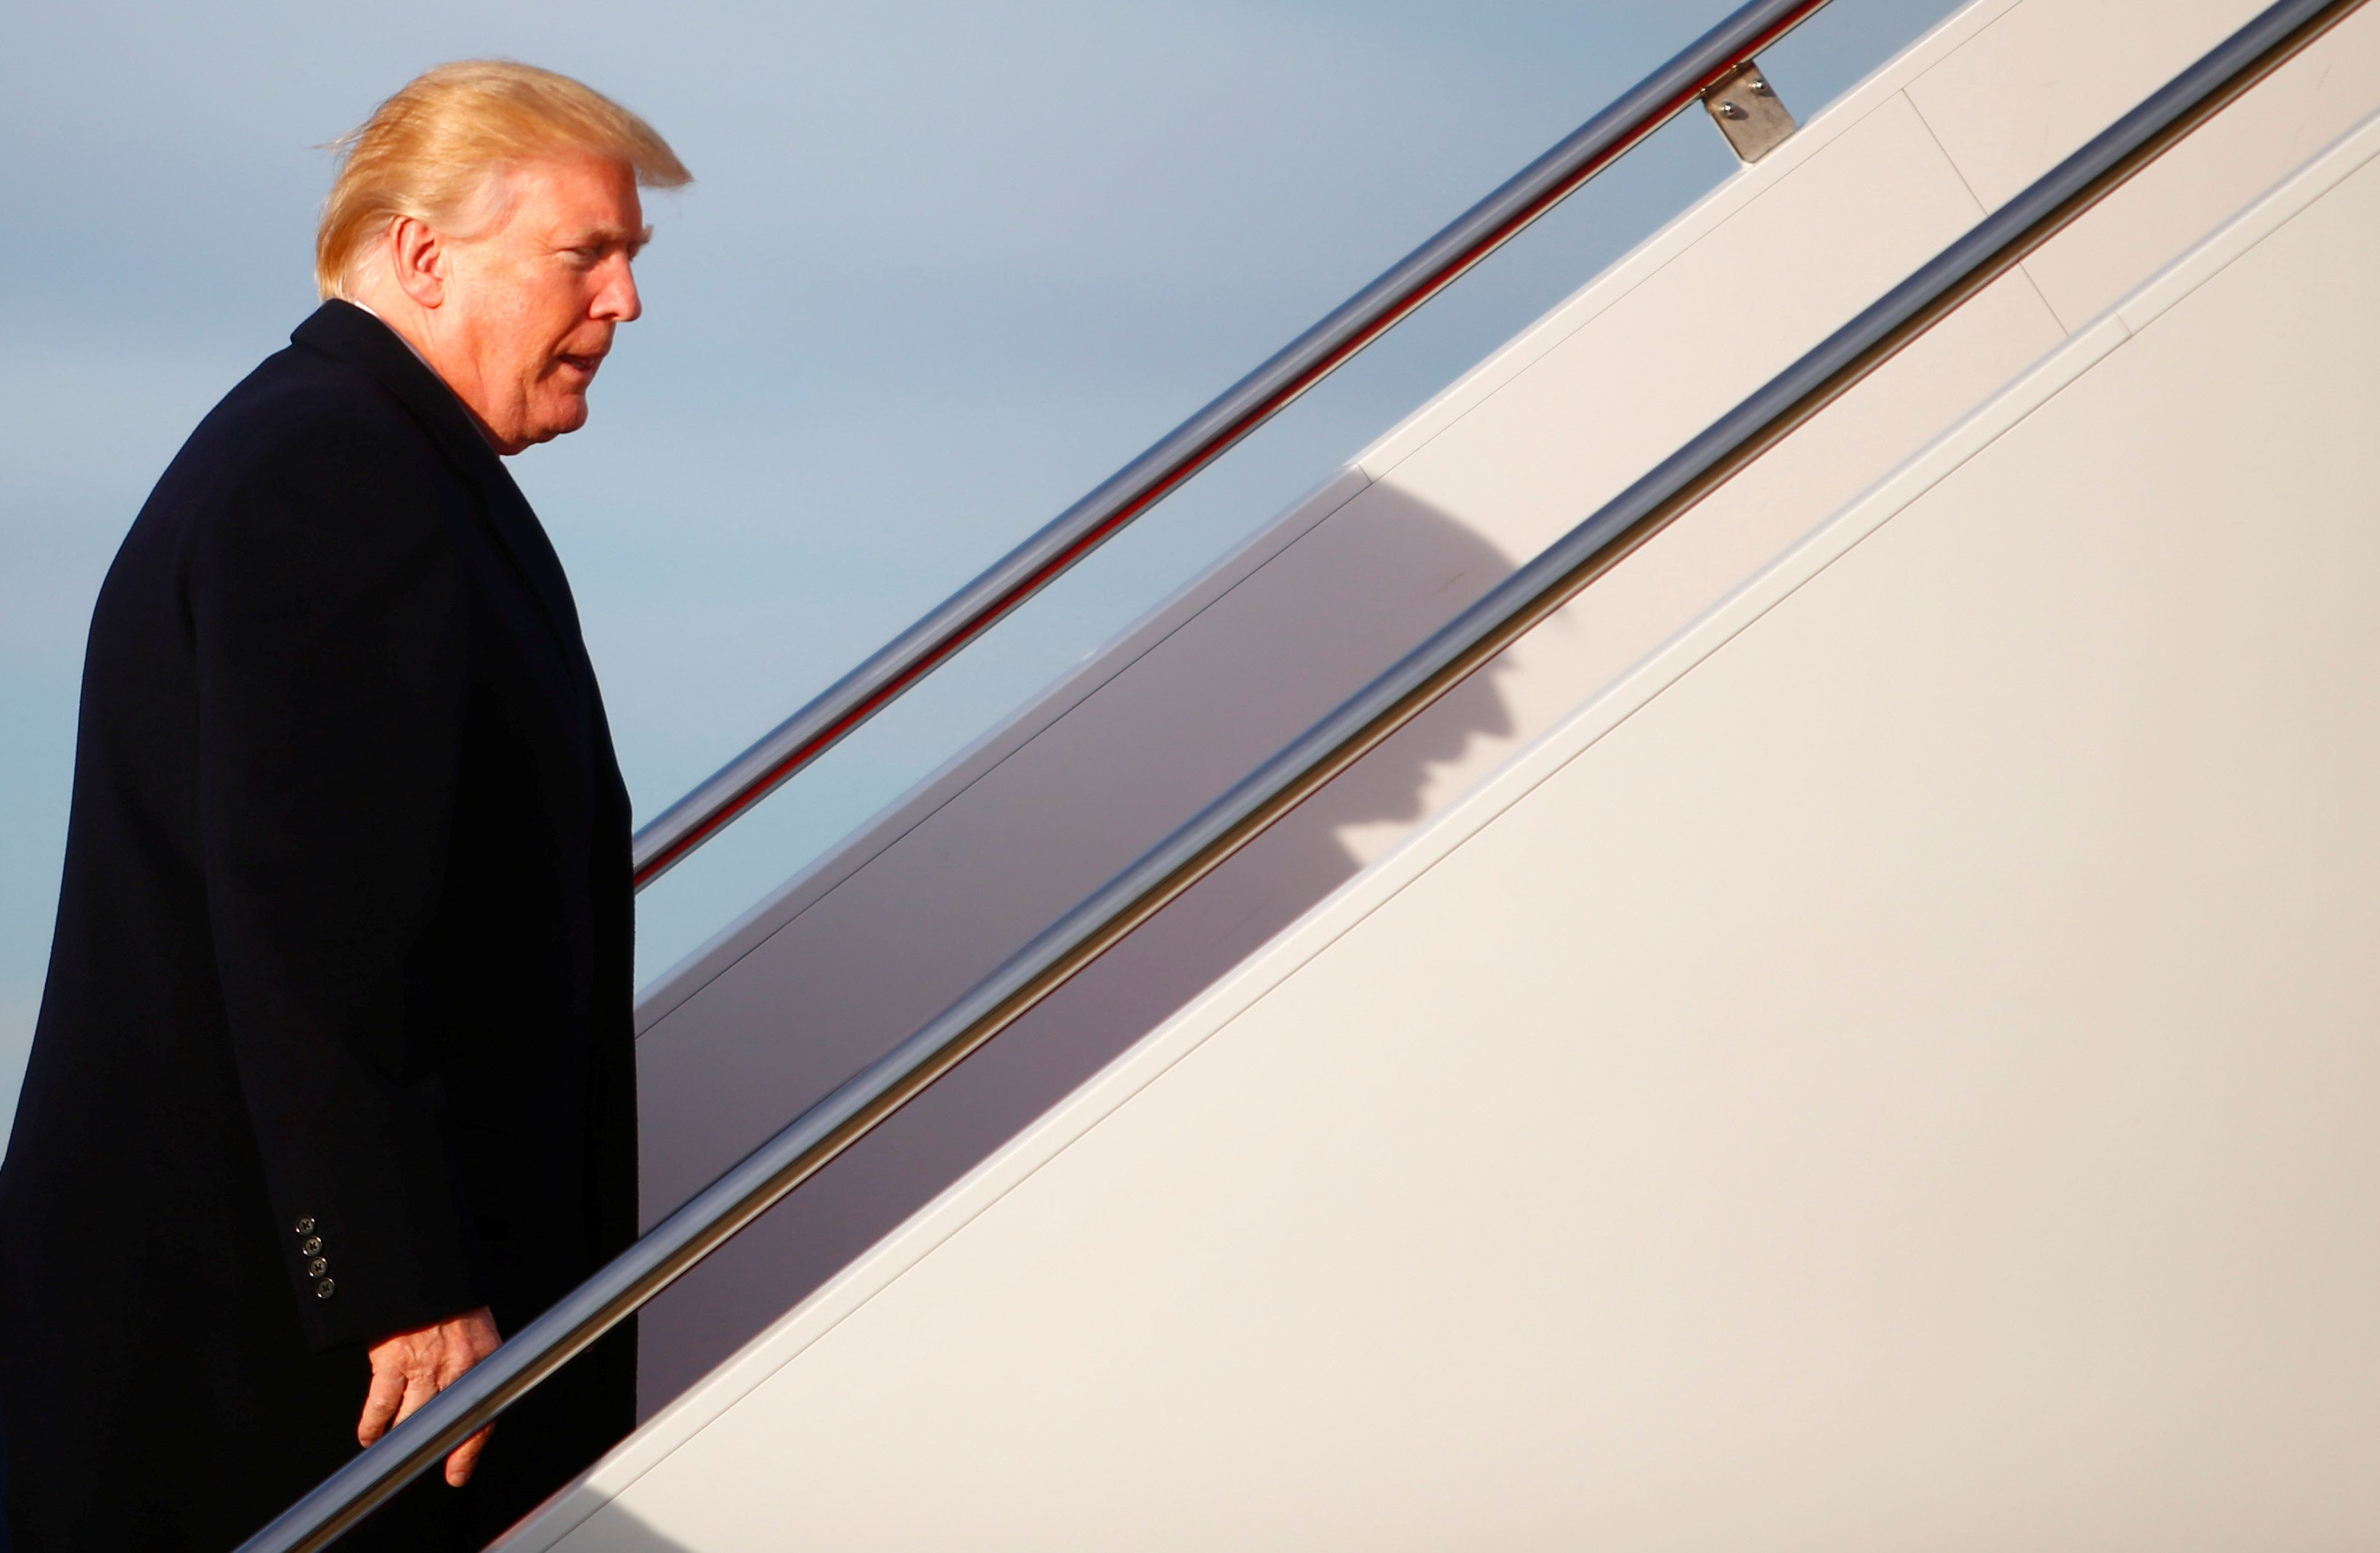 U.S. President Donald Trump boards Air Force One as he departs for West Palm Beach, Florida, from Joint Base Andrews, Maryland, U.S., November 21, 2017. REUTERS/Eric Thayer